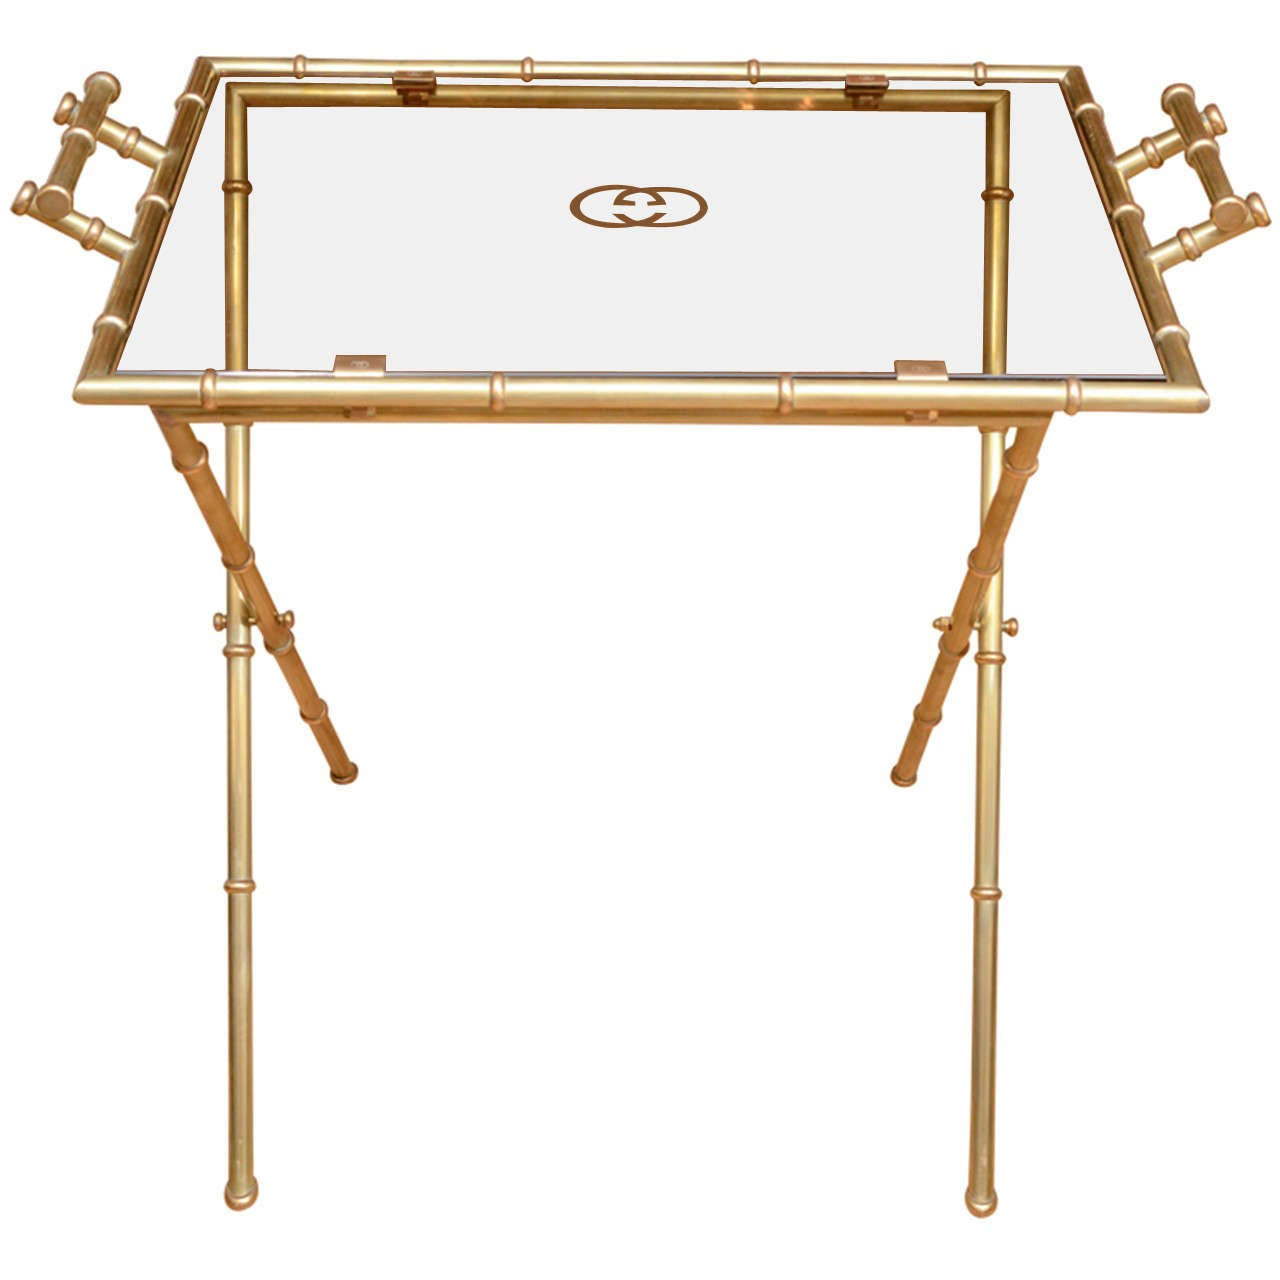 Brass faux bamboo side table by gucci at 1stdibs for Bamboo side table